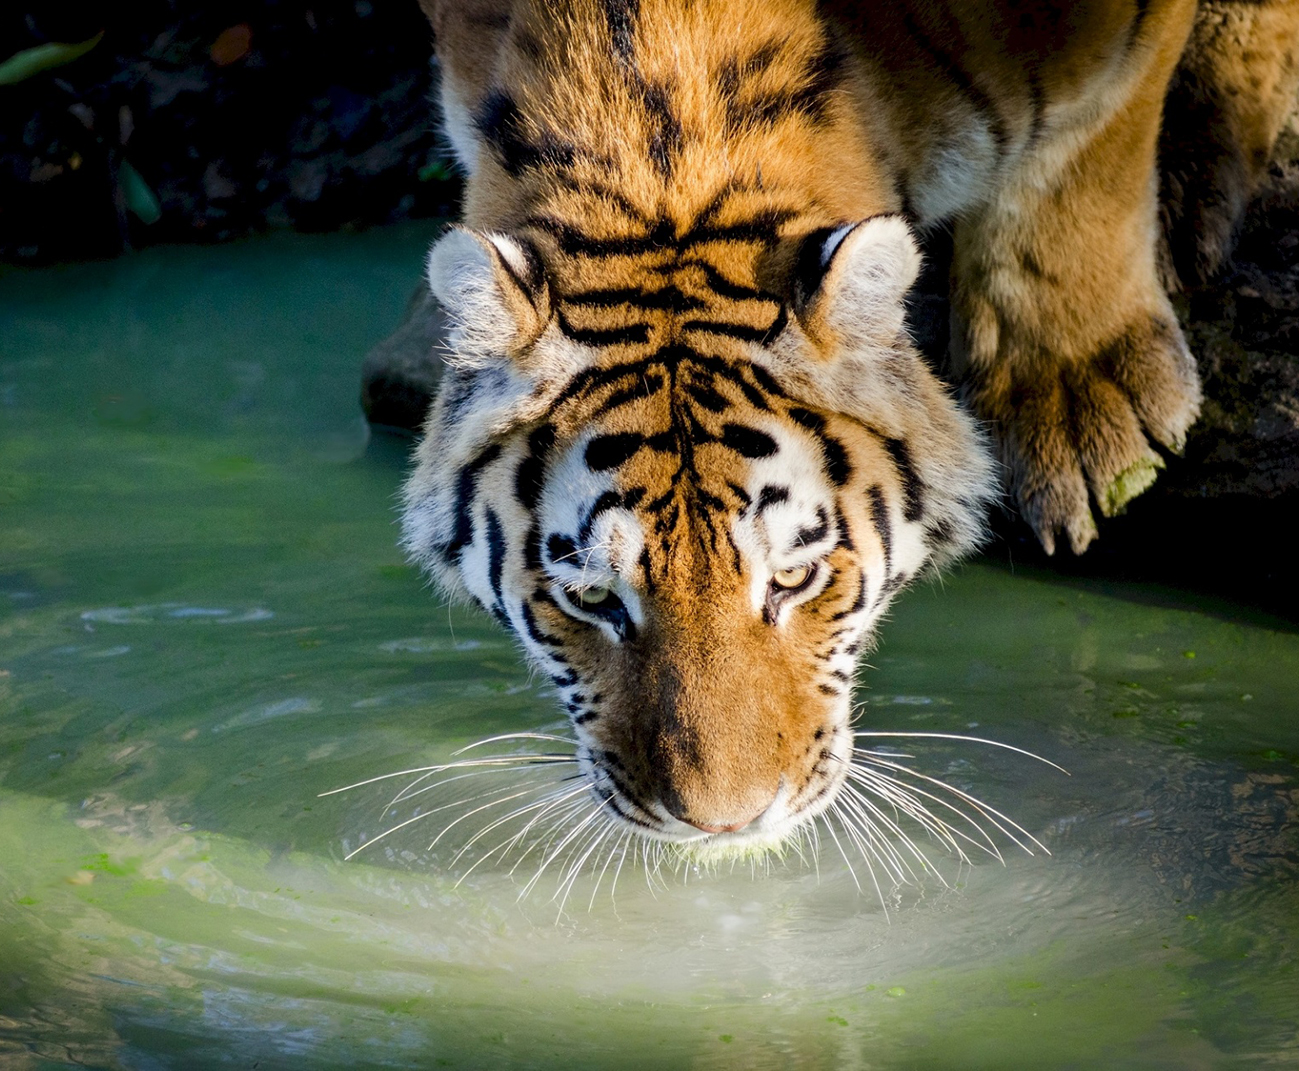 photo of tiger drinking water